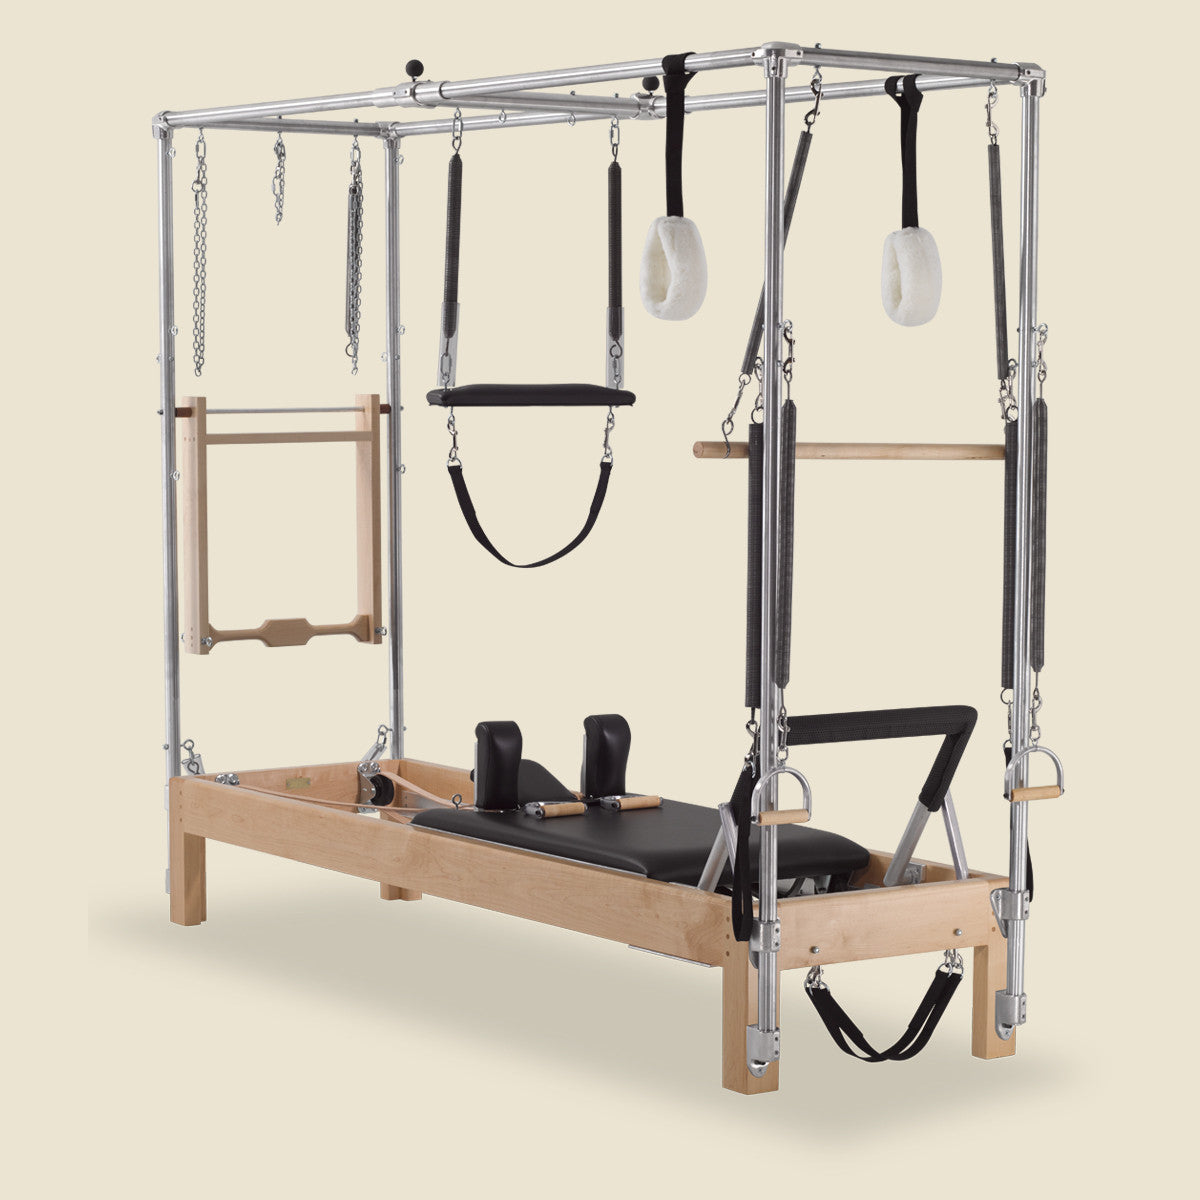 "Cadillac Pilates: Instant Full Cadillac Conversion With 86"" Universal Reformer - Gratz™ Pilates"